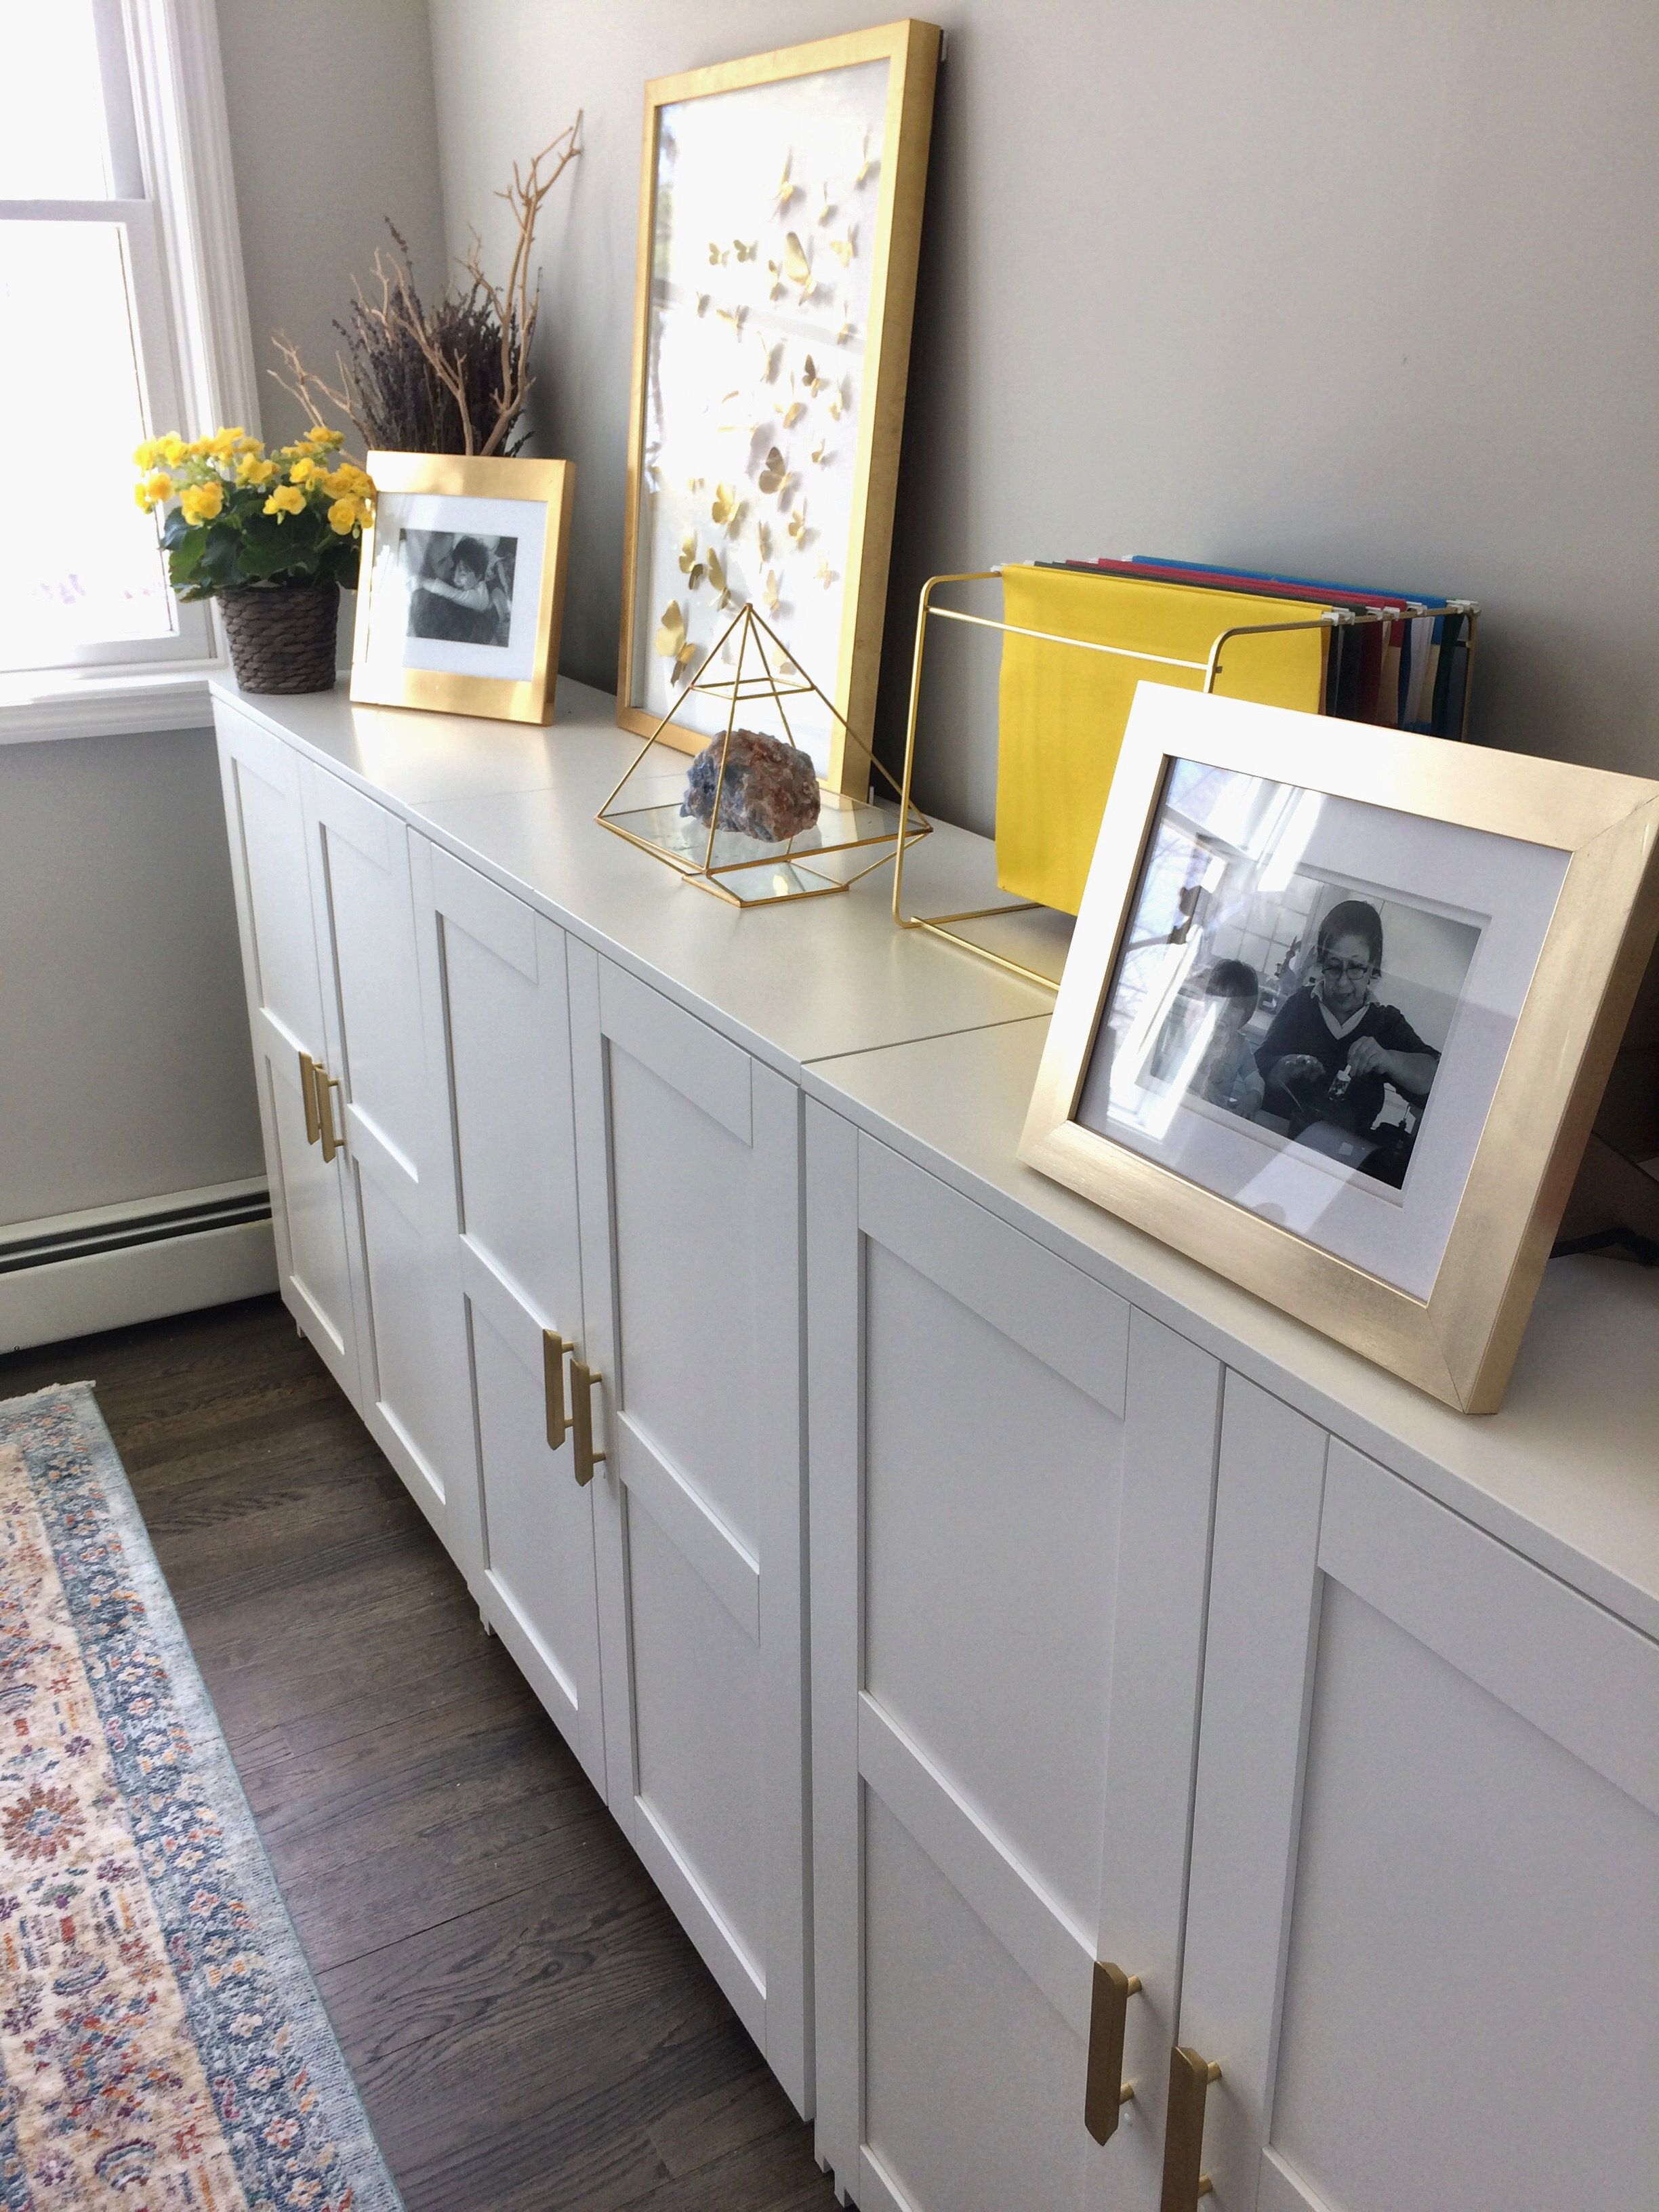 Ikea Brimnes Cabinets With Gold Pulls Living Room Storage